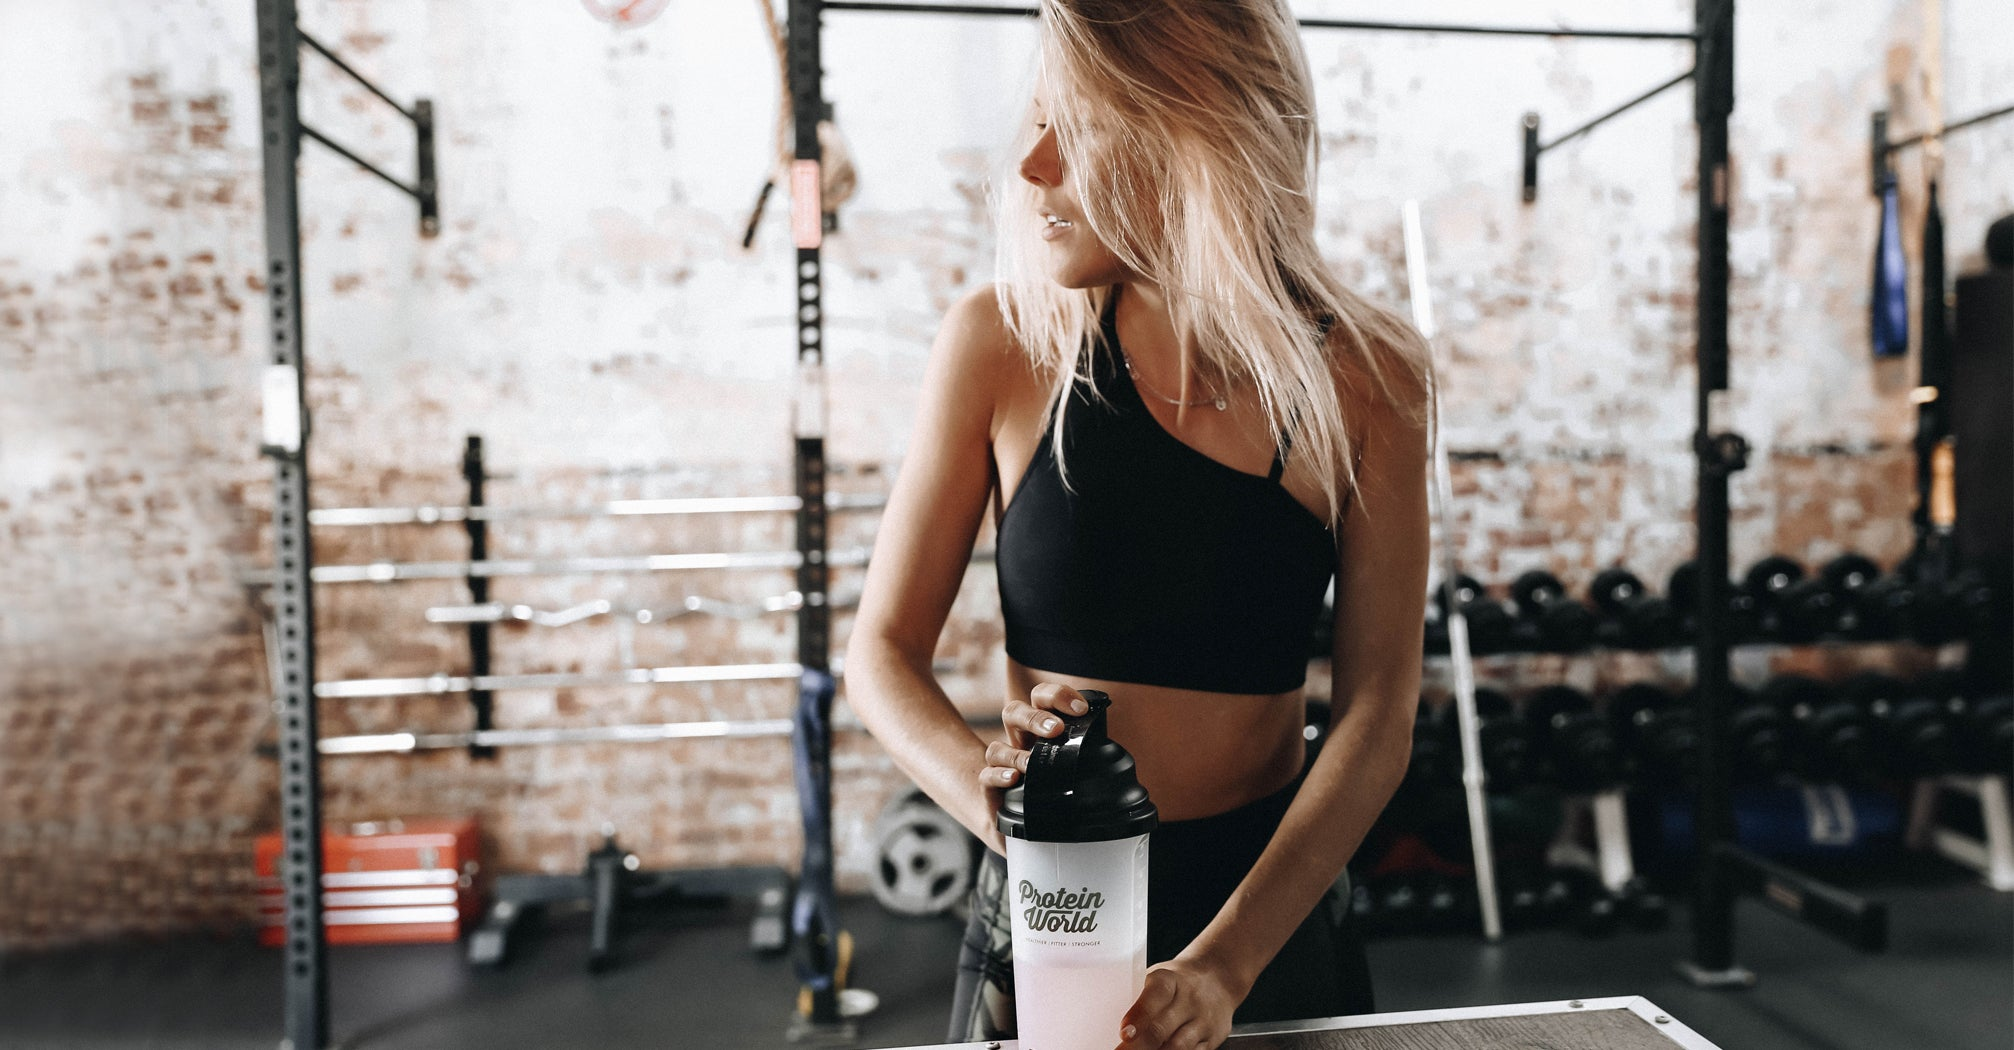 Girl with Protein World shaker in the gym